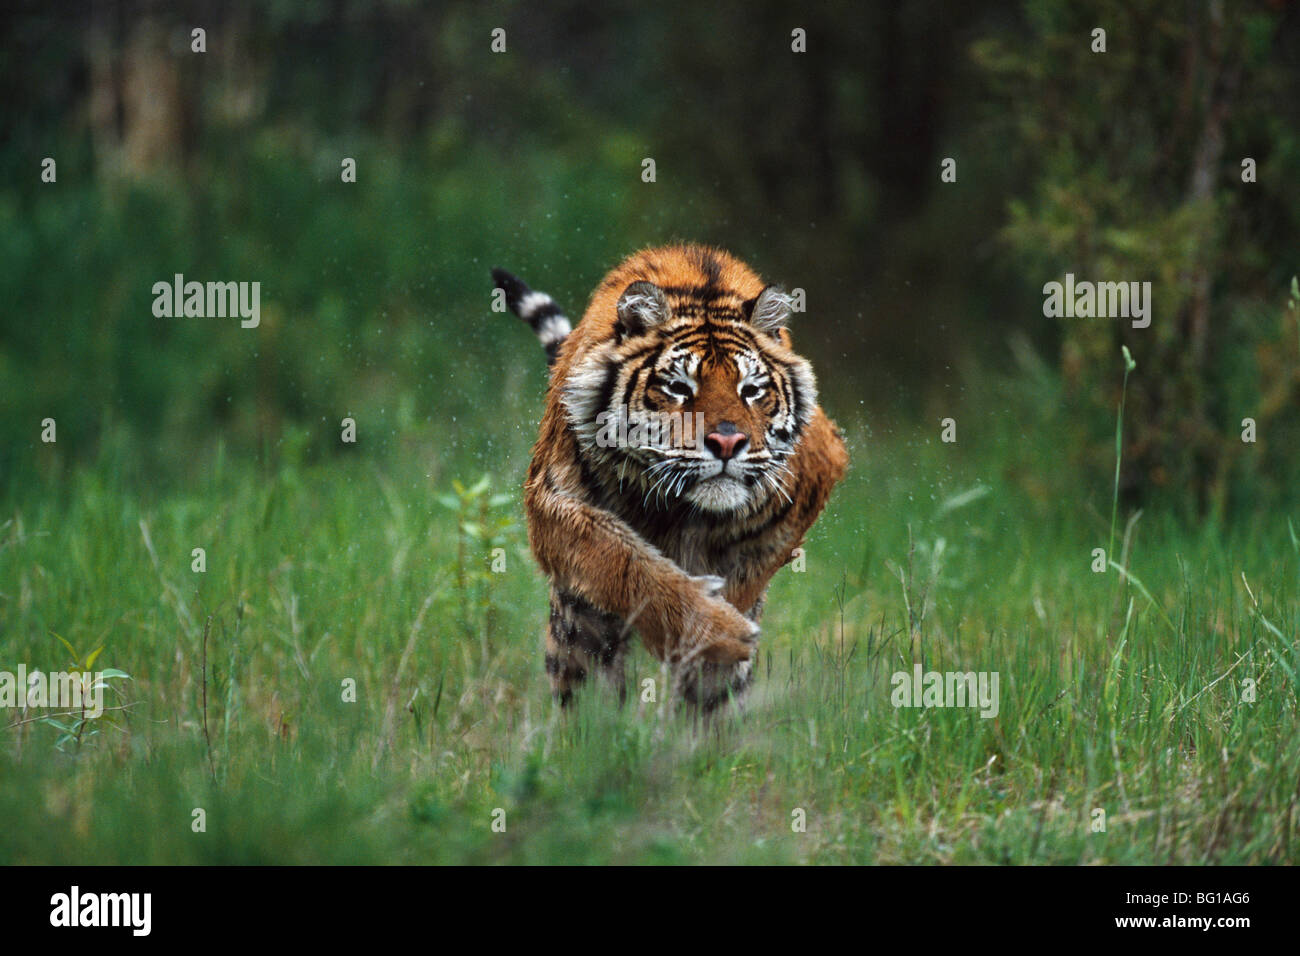 Wet Siberian tiger charging - Stock Image